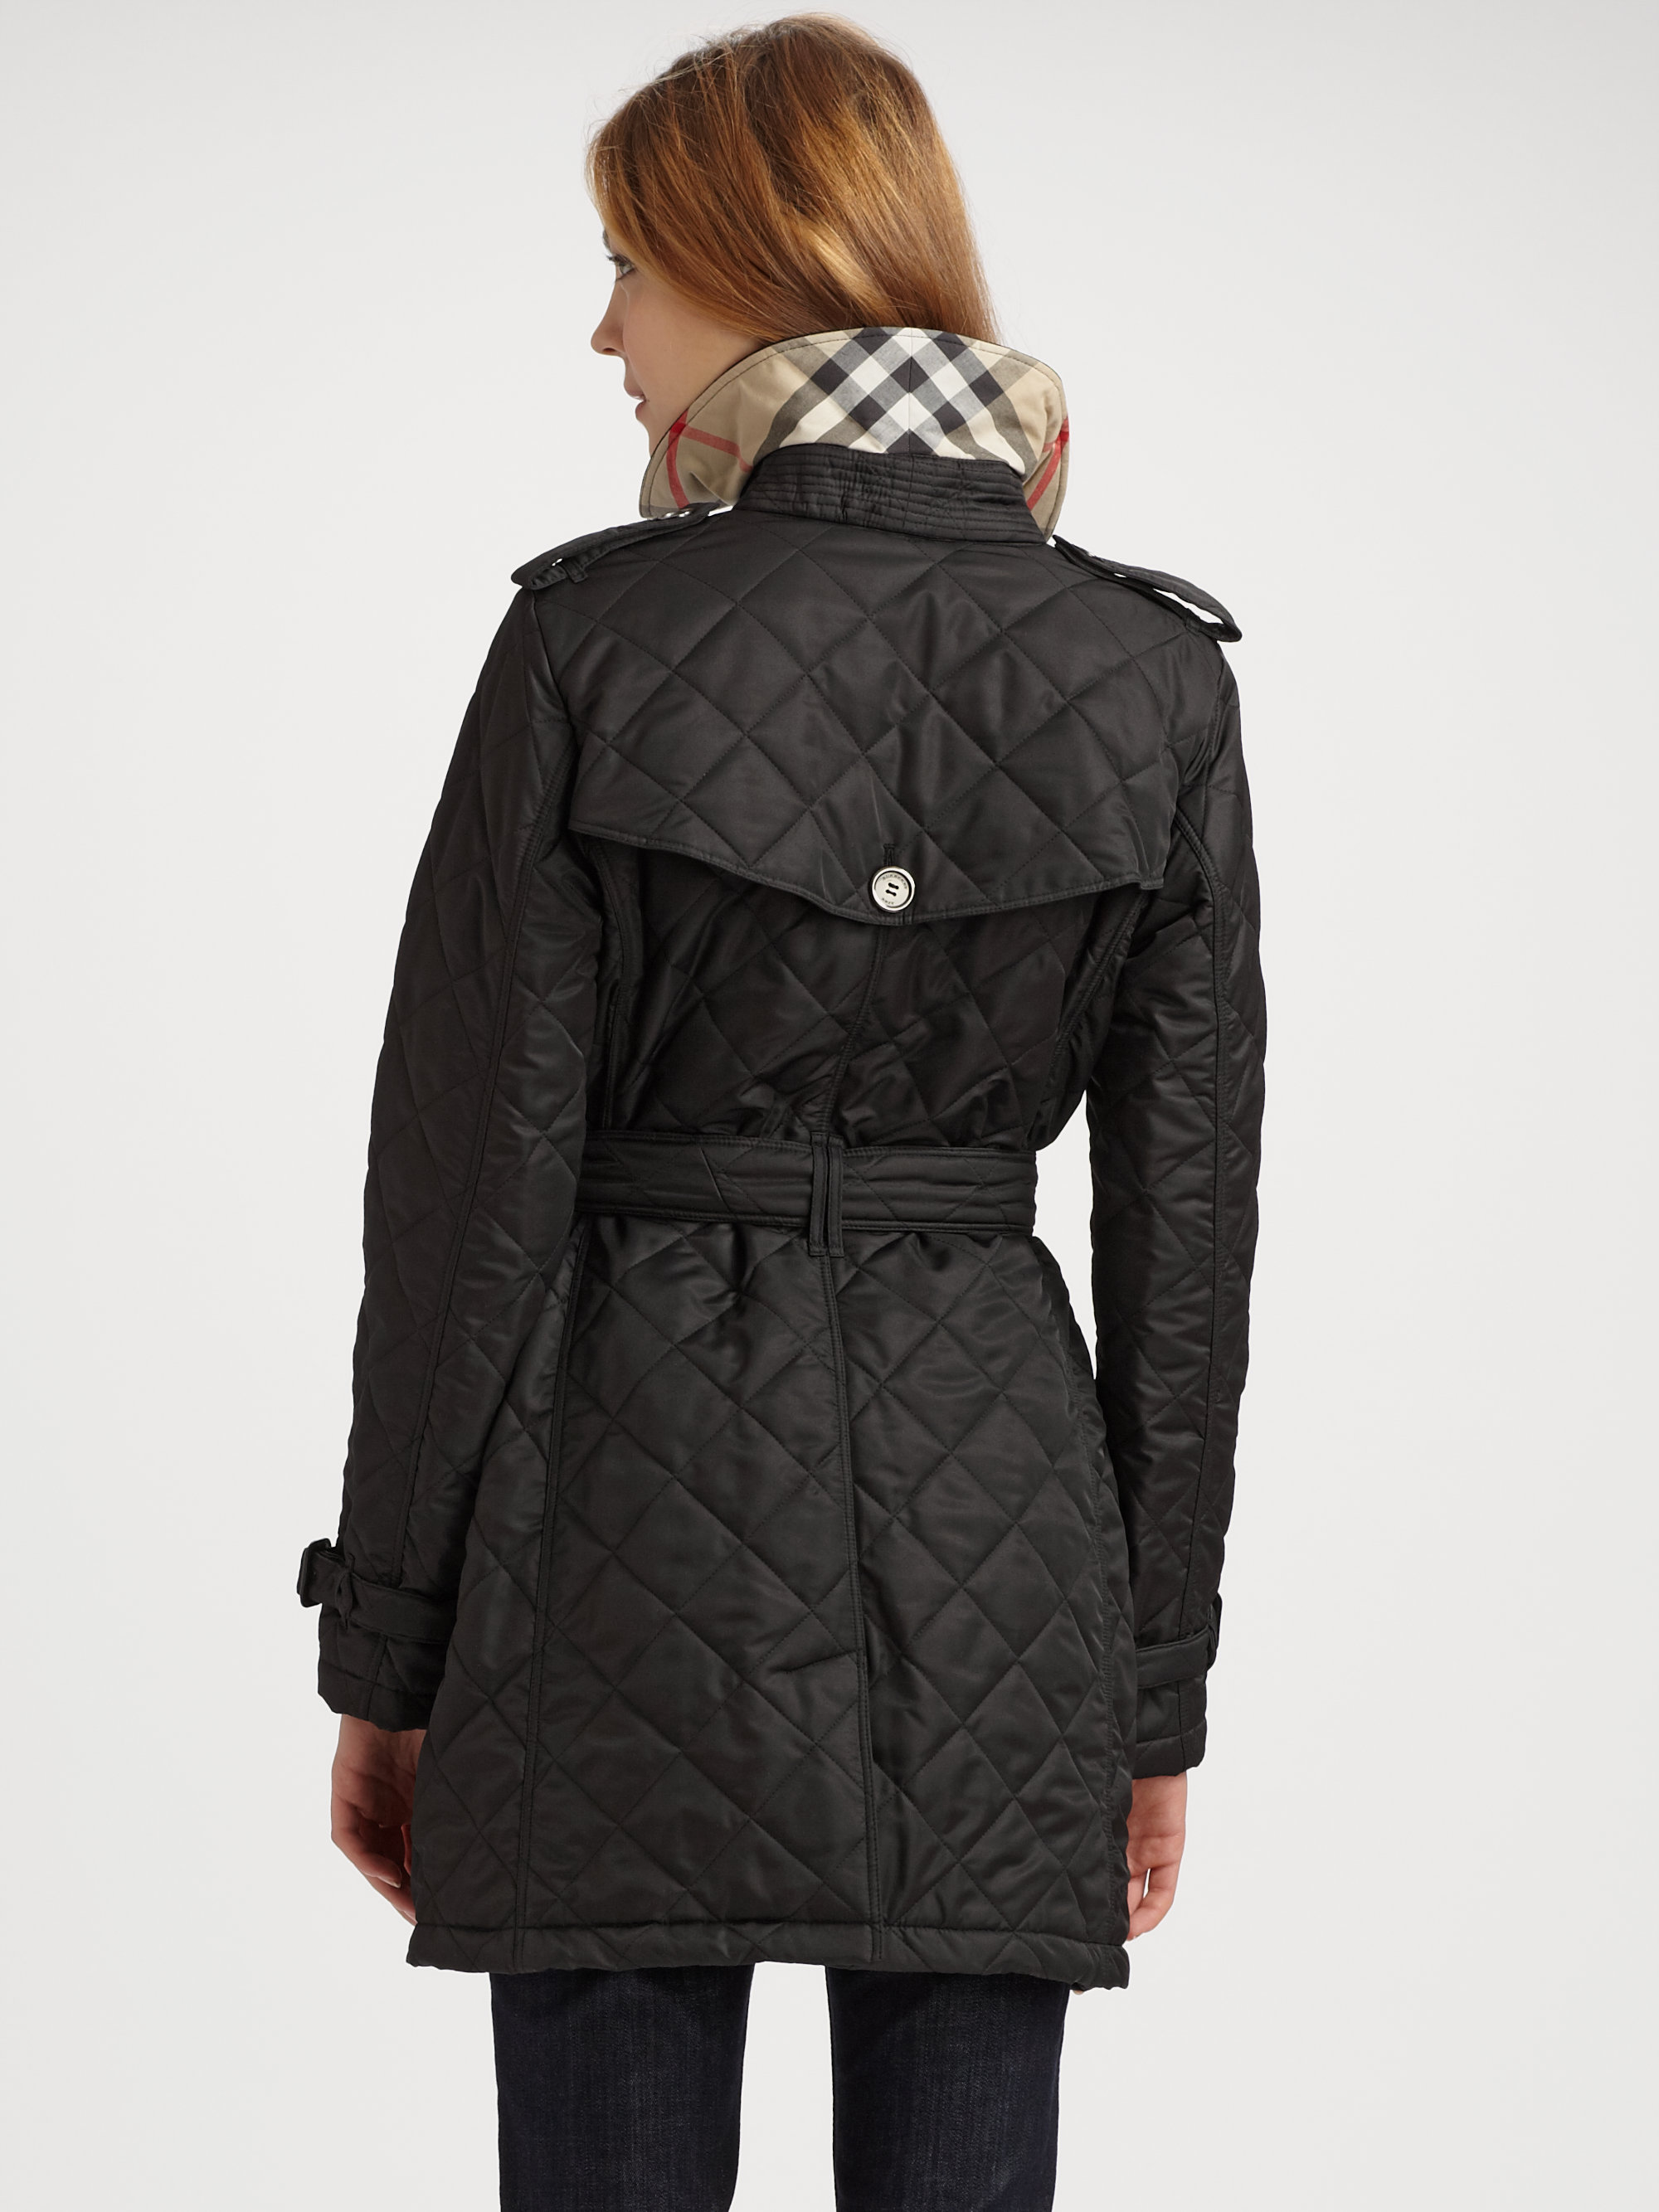 Burberry Brit Quilted Trench Jacket In Black Lyst